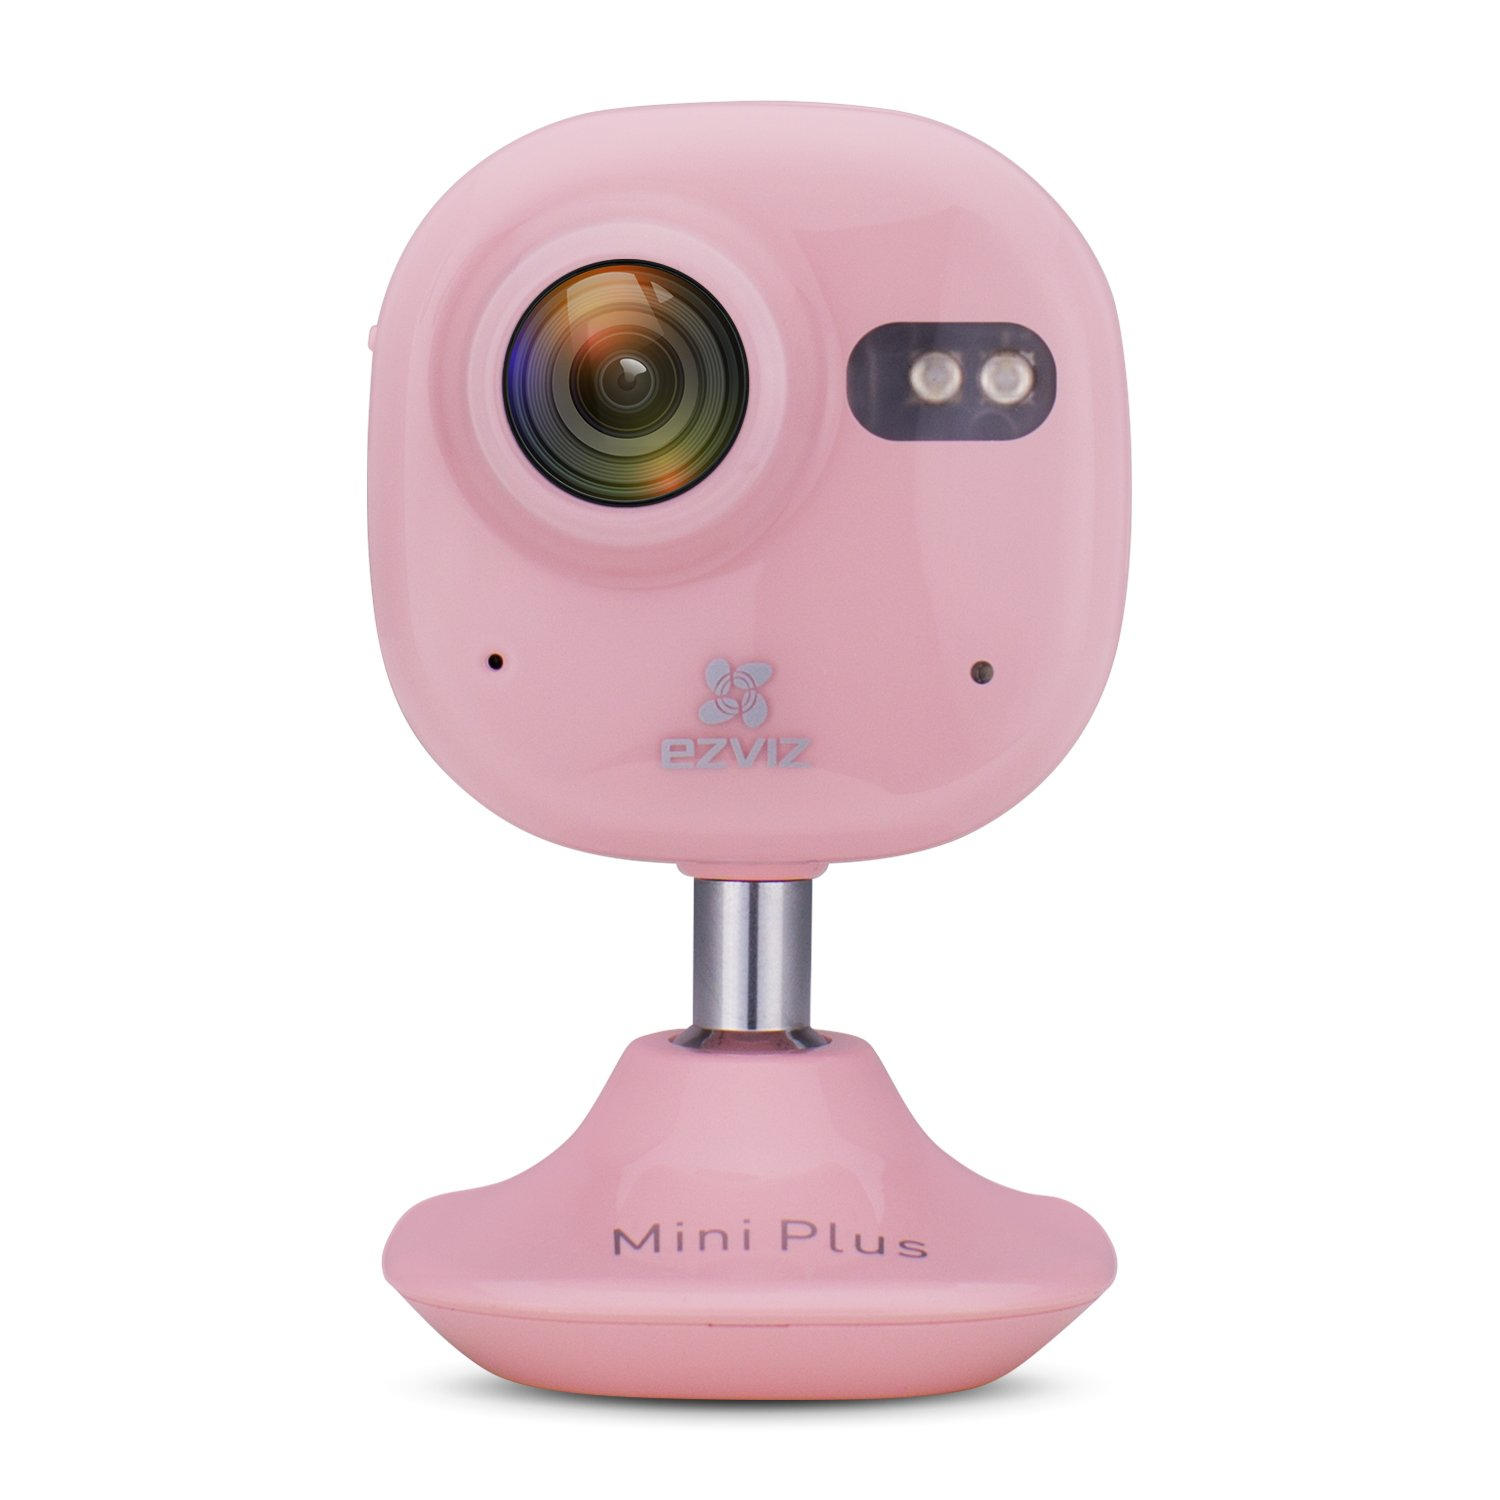 EZVIZ Mini Plus Wide Angle HD 1080p Wi-Fi Indoor Home Video Monitoring Security Camera, Works with Alexa, Baby Monitor, Nanny Cam, Night Vision, 2 Way Talk, Pink